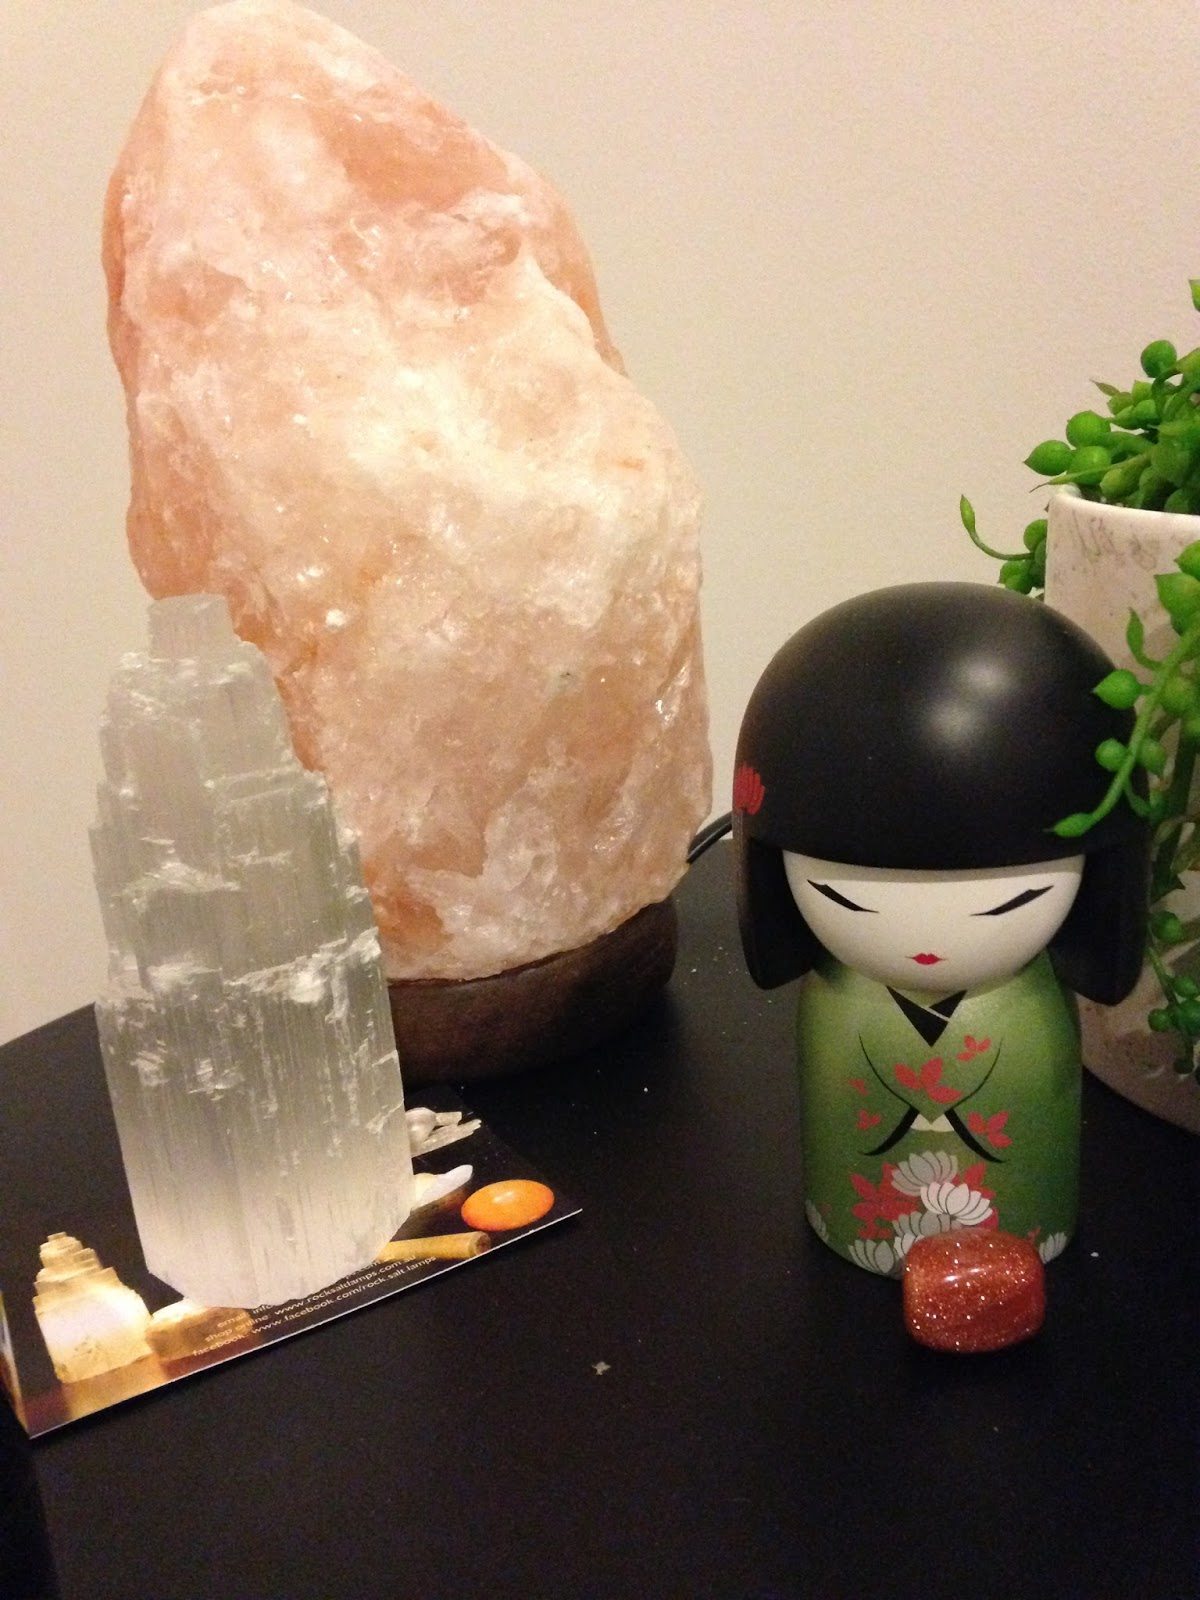 Salt Lamps Toxic To Cats : Core Integrity with Cat